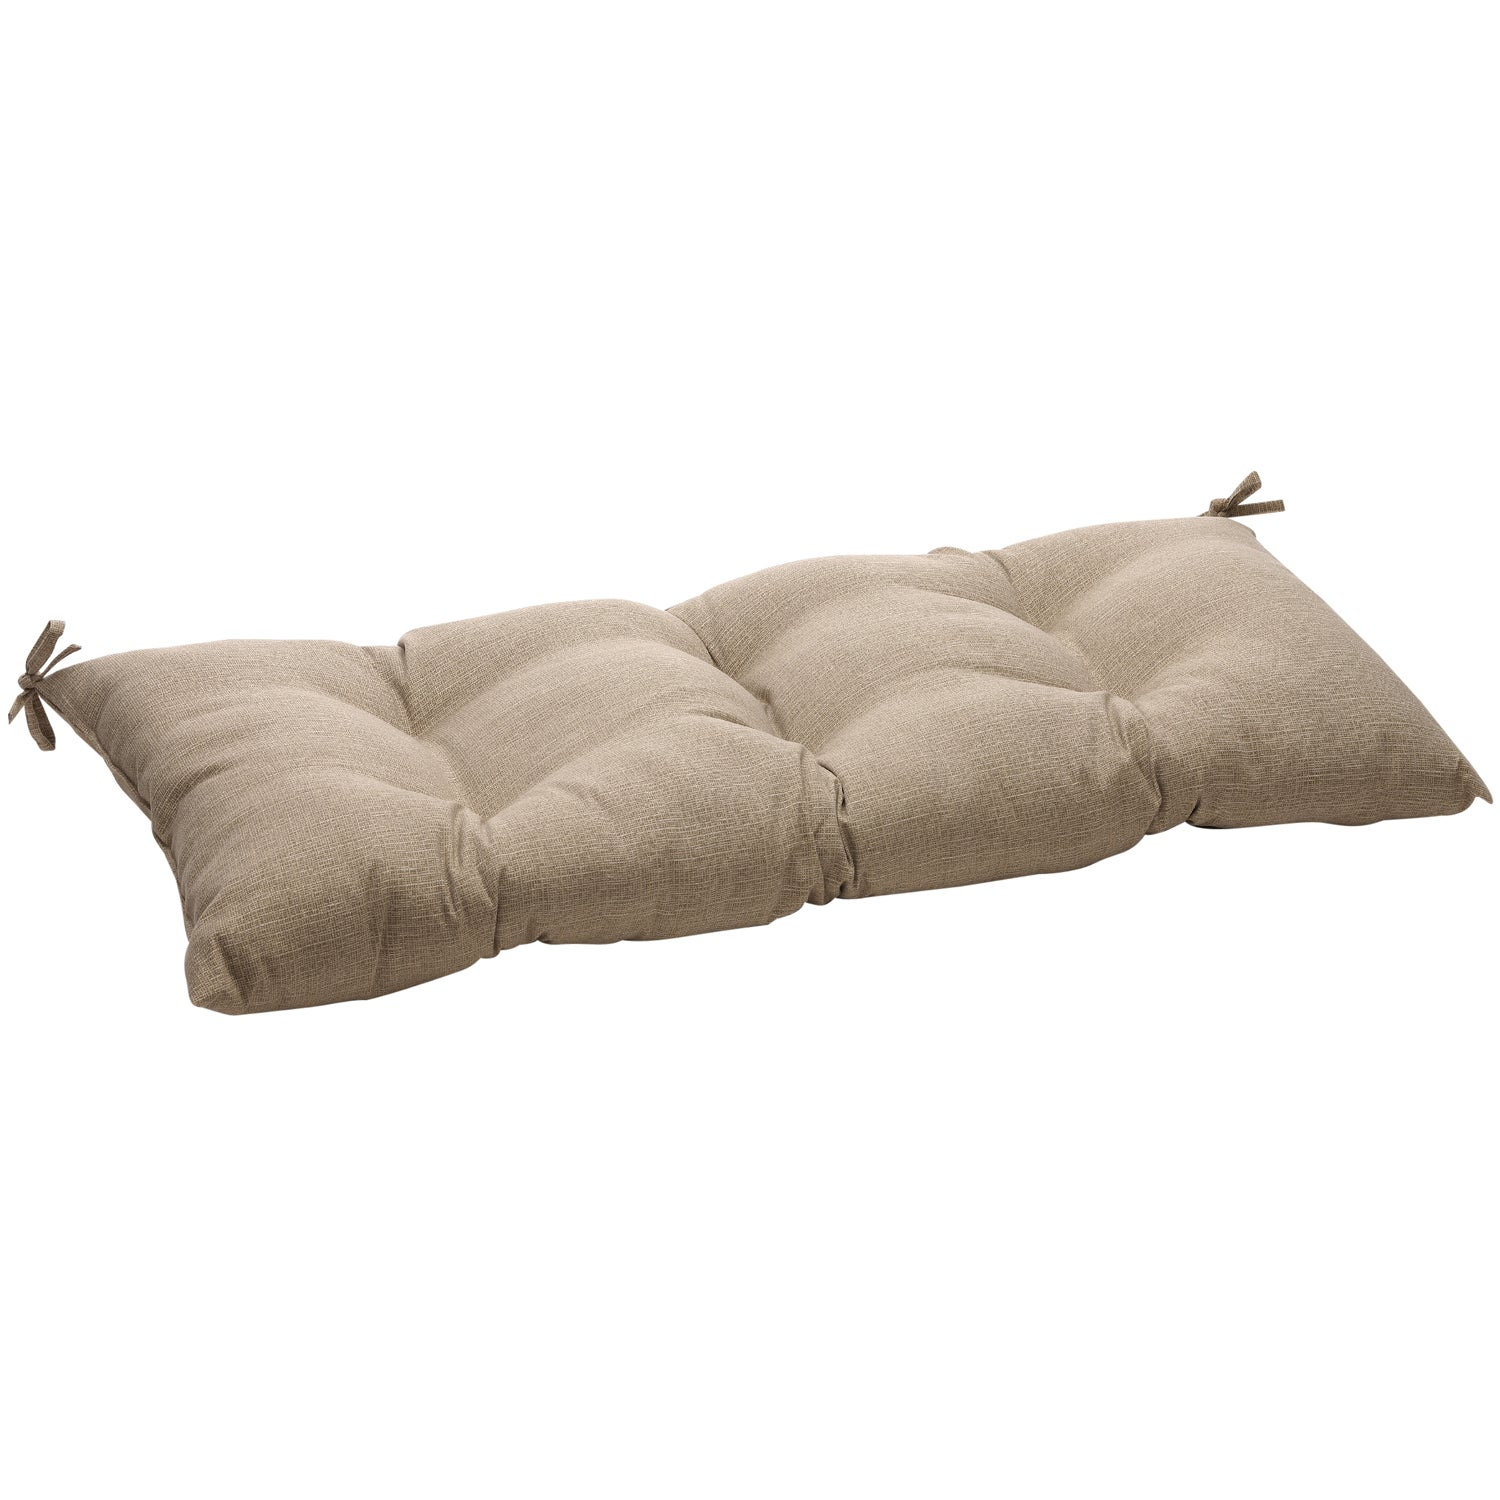 Pillow Perfect Outdoor/ Indoor Monti Taupe Swing/ Bench Cushion